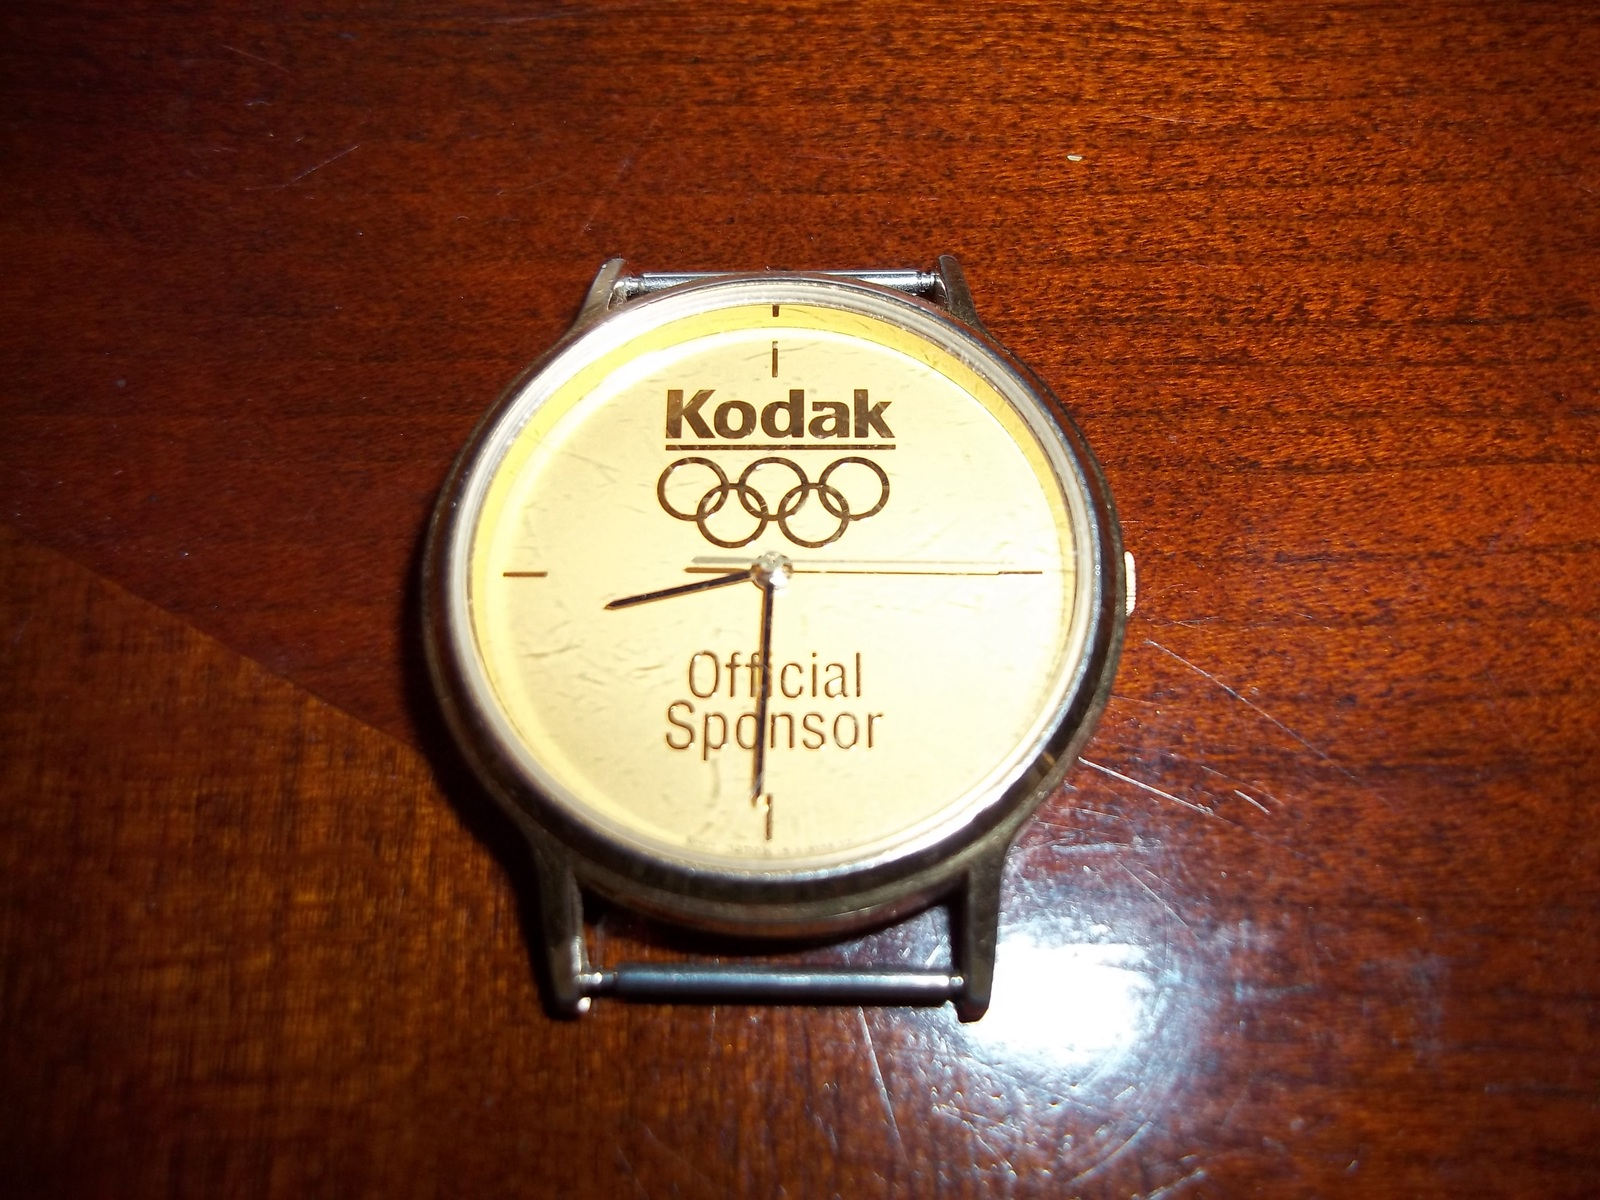 Primary image for Kodak 100th anniversary Olympics sponsorship watch, vintage 1980s